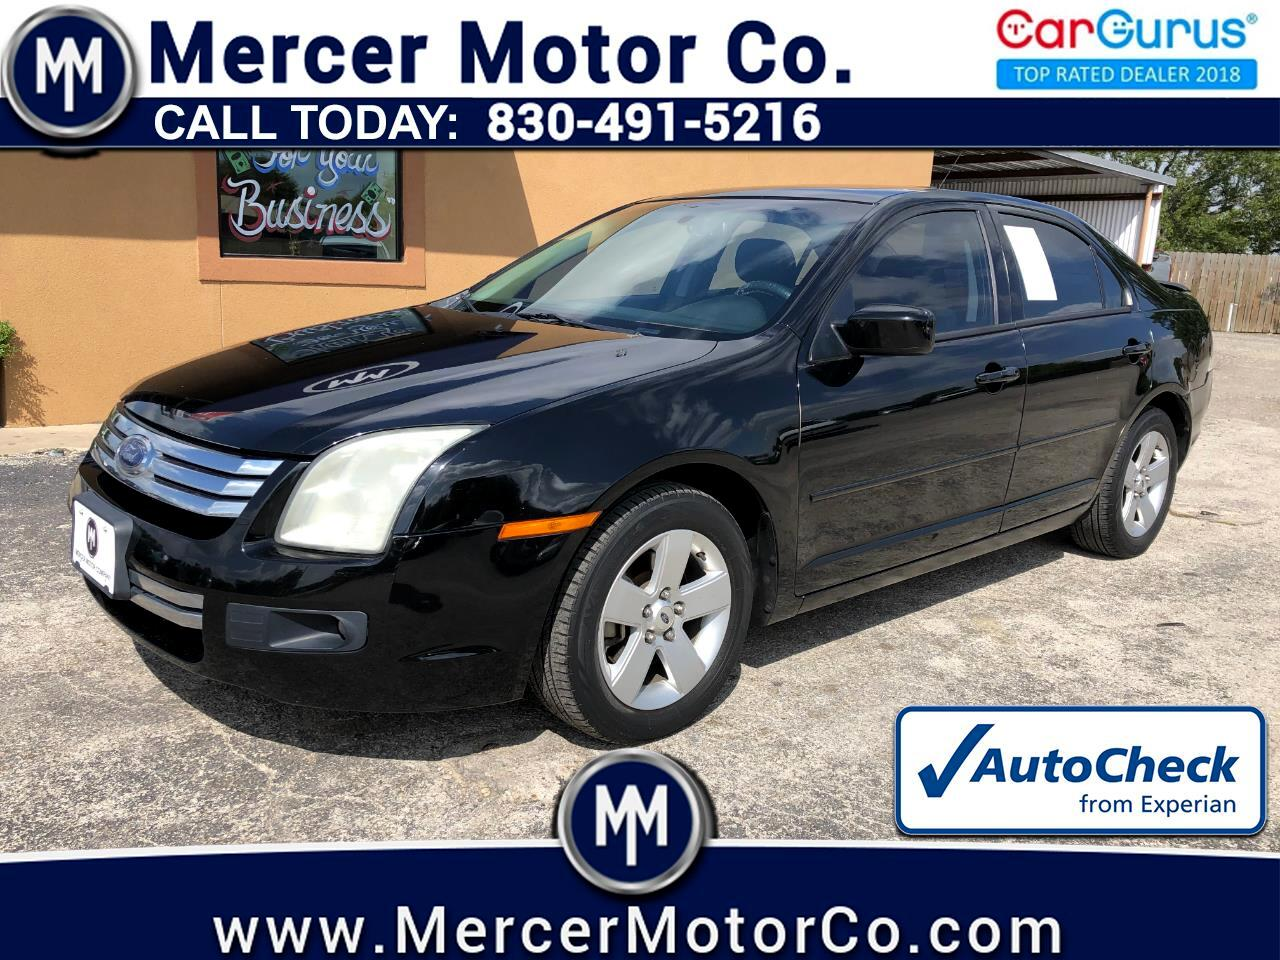 Ford Fusion 4dr Sdn I4 SE FWD 2008